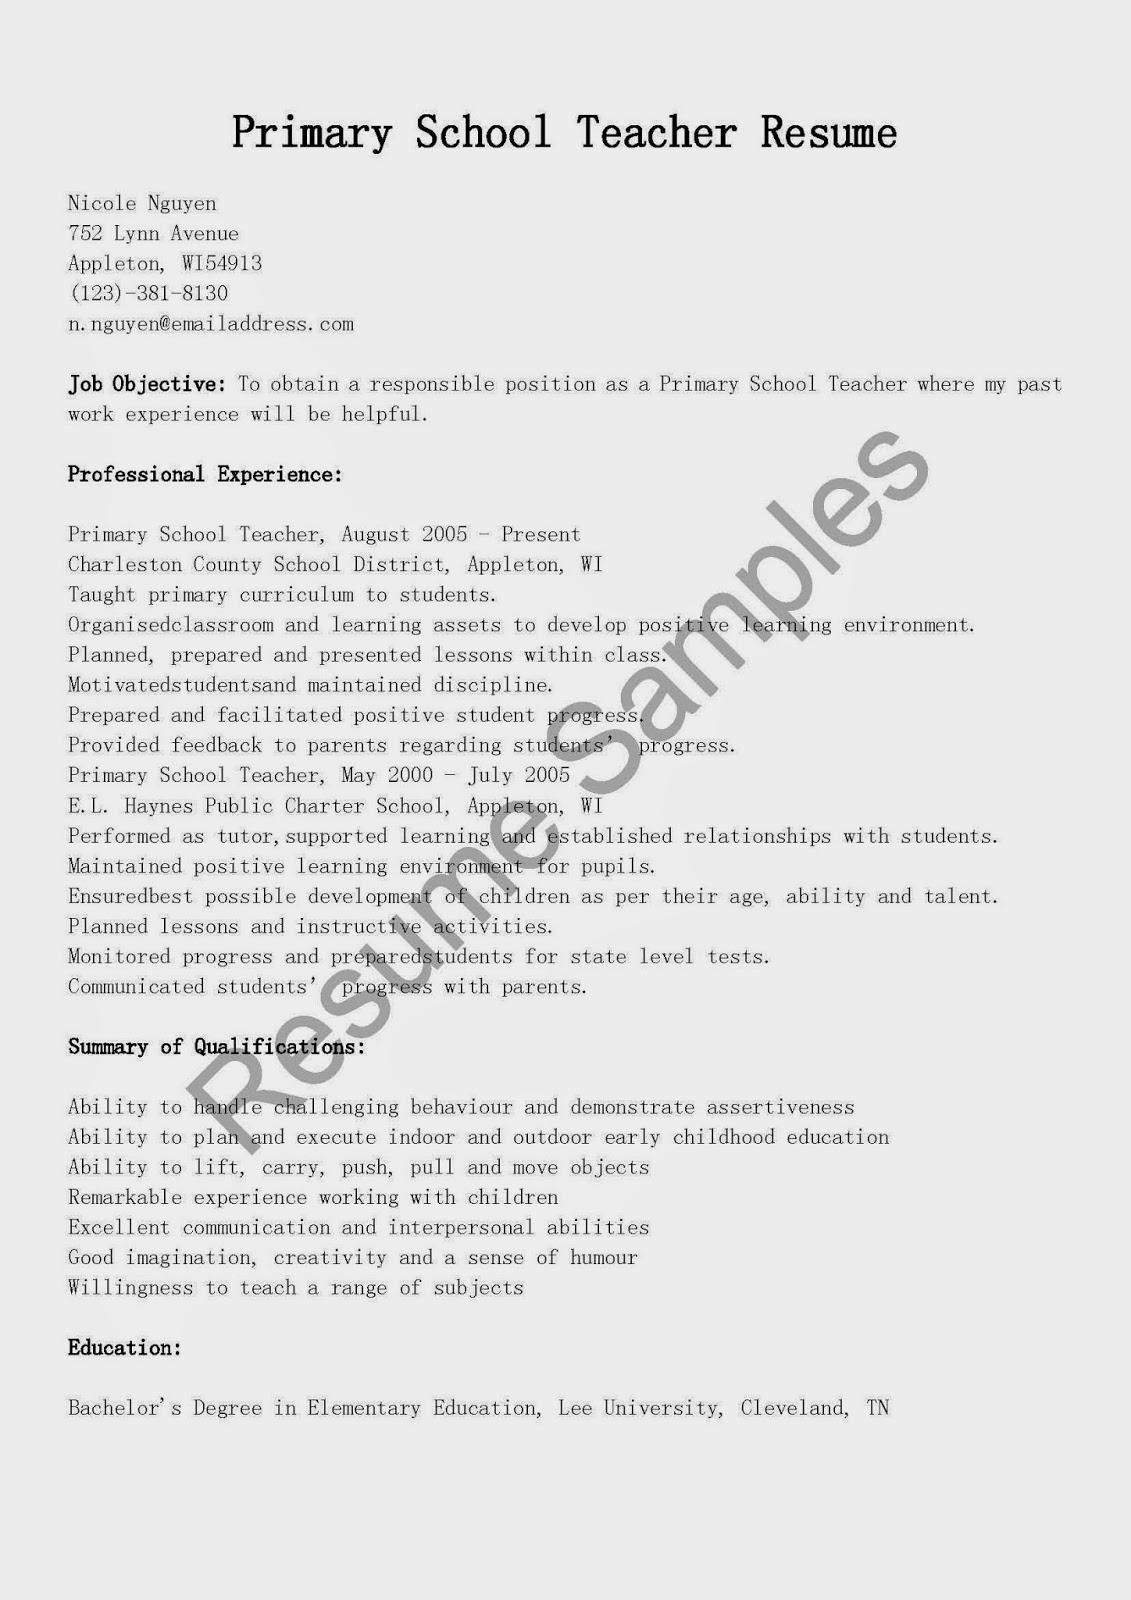 resume samples  primary school teacher resume sample